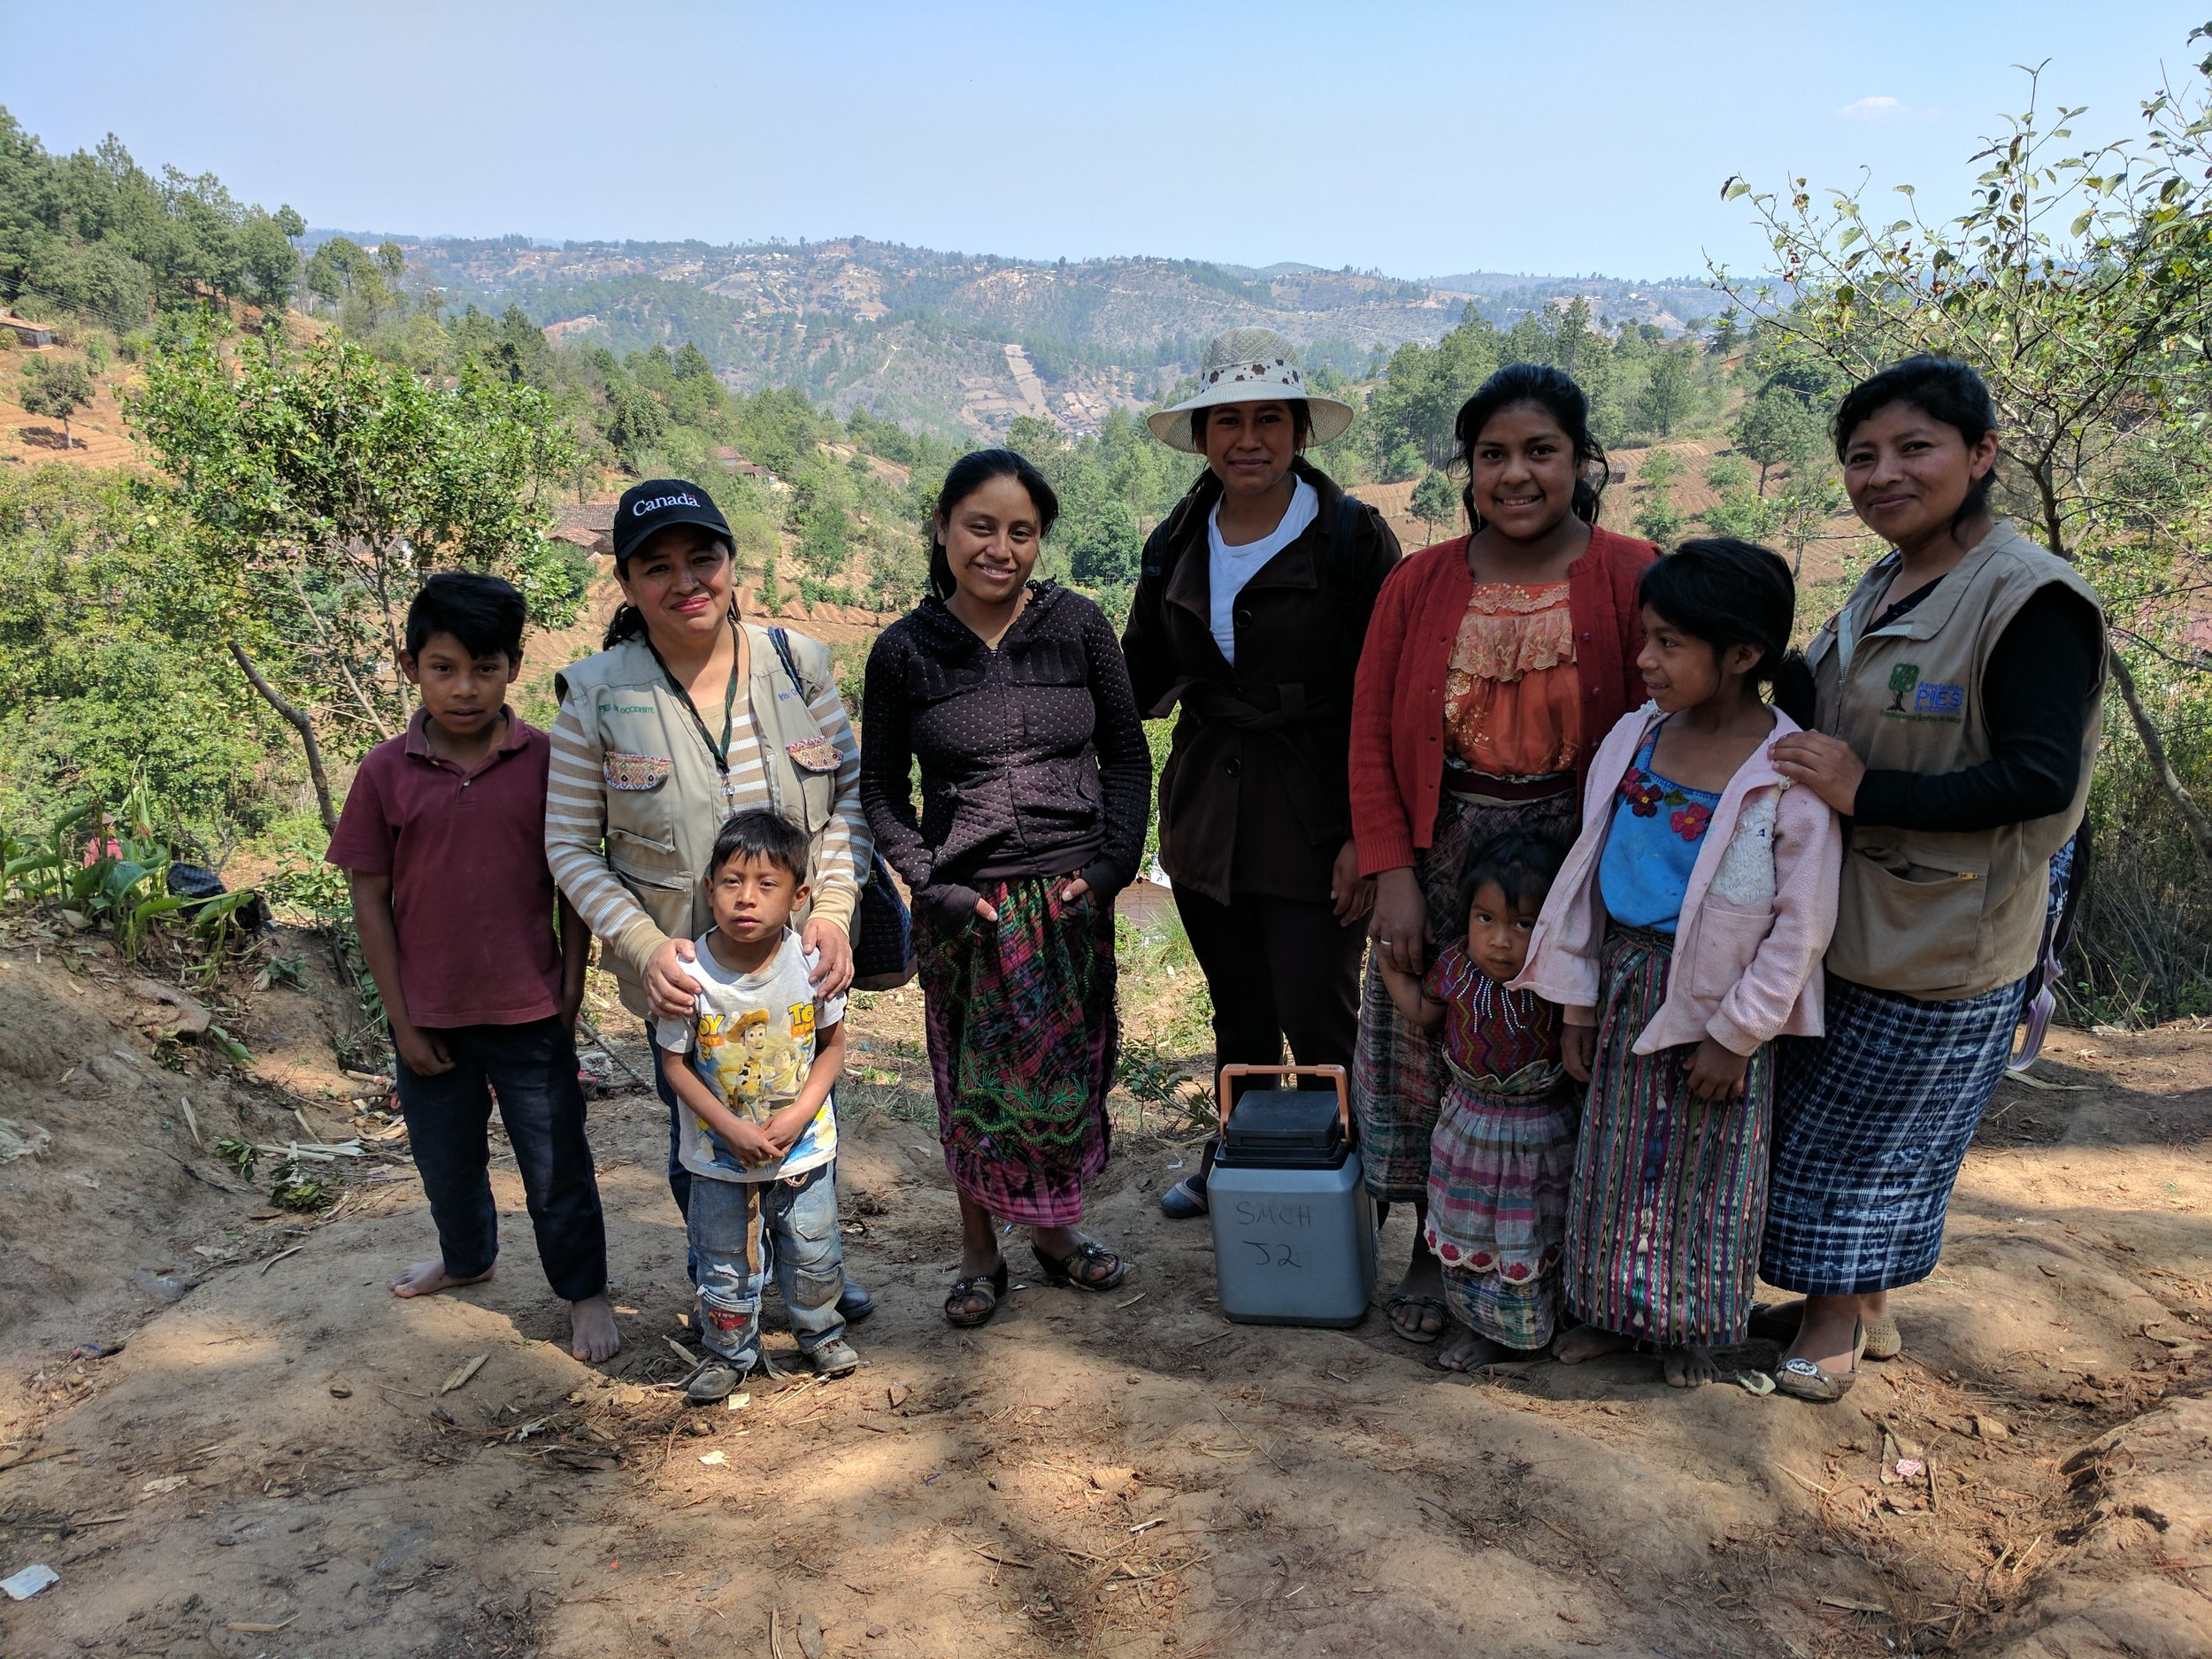 PIES Health Educators visit Indigenous families in some of the most remote and rural communities of the Department of Totonicapán to provide workshops and personal counselling on women's and children's health, including their rights to a life free of violence.